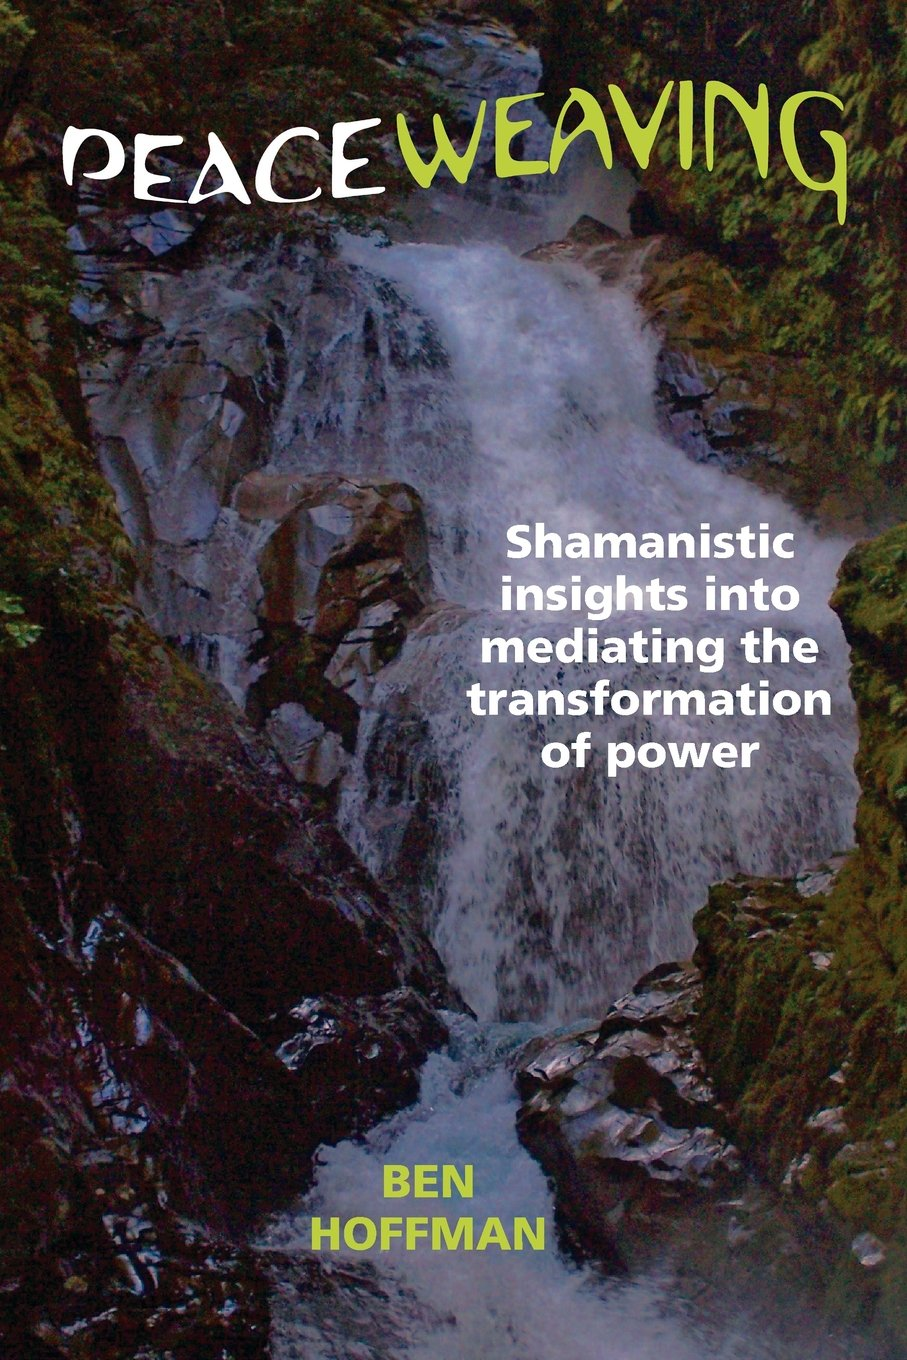 Download Peaceweaving: Shamanistic insights into mediating the transformation of power pdf epub